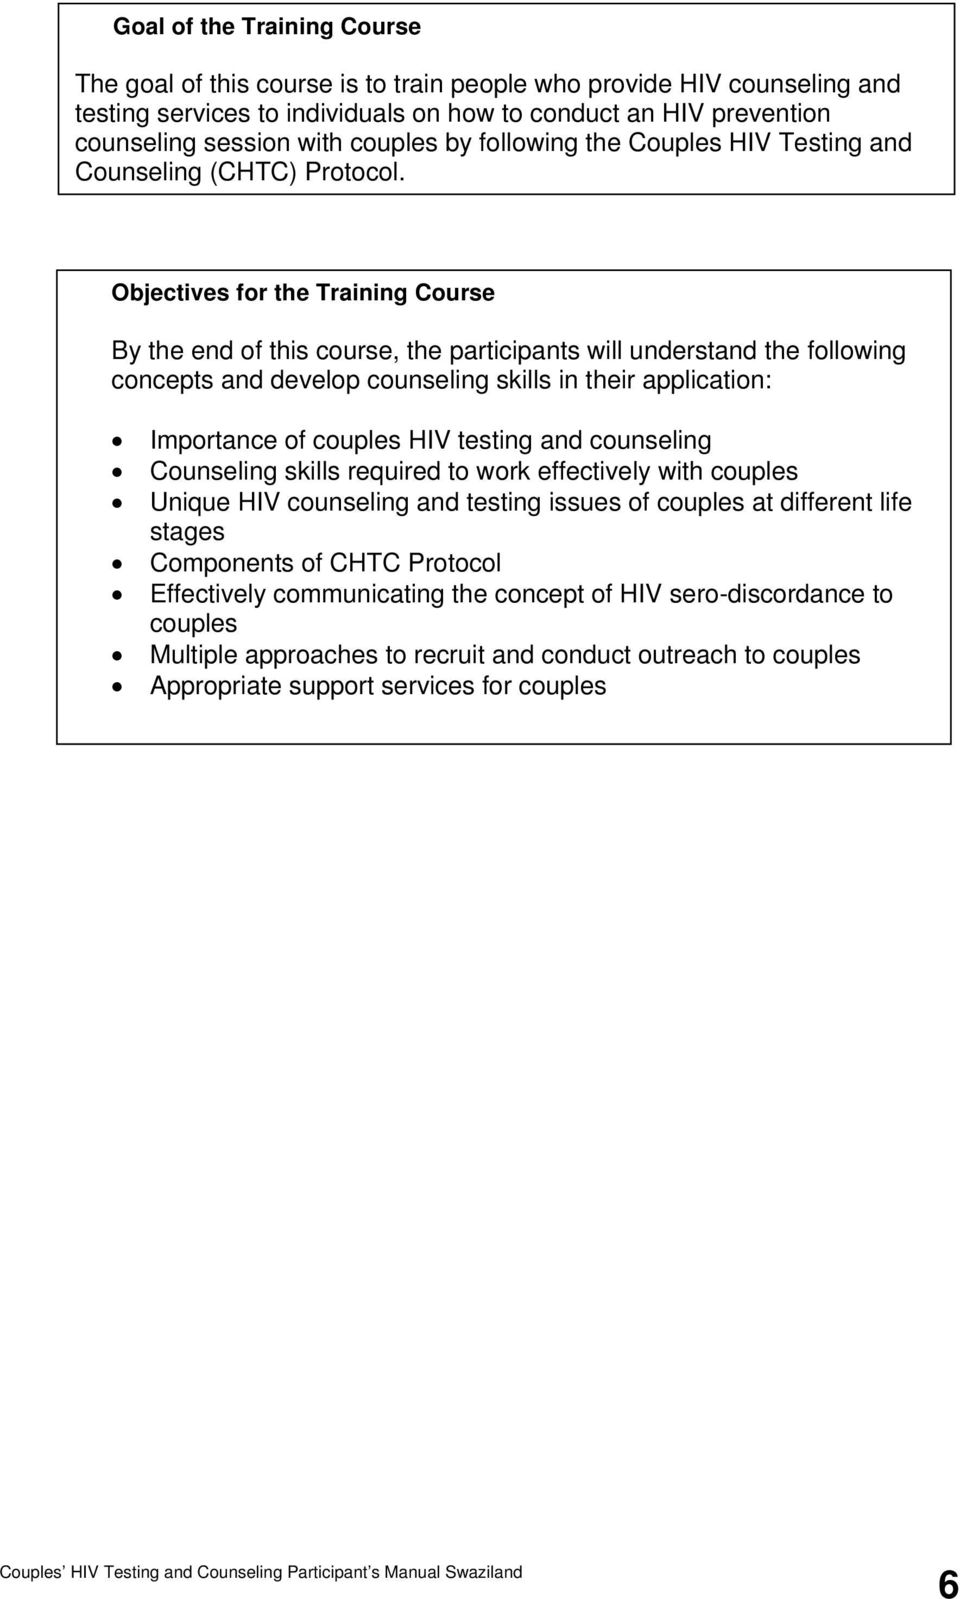 Objectives for the Training Course By the end of this course, the participants will understand the following concepts and develop counseling skills in their application: Importance of couples HIV